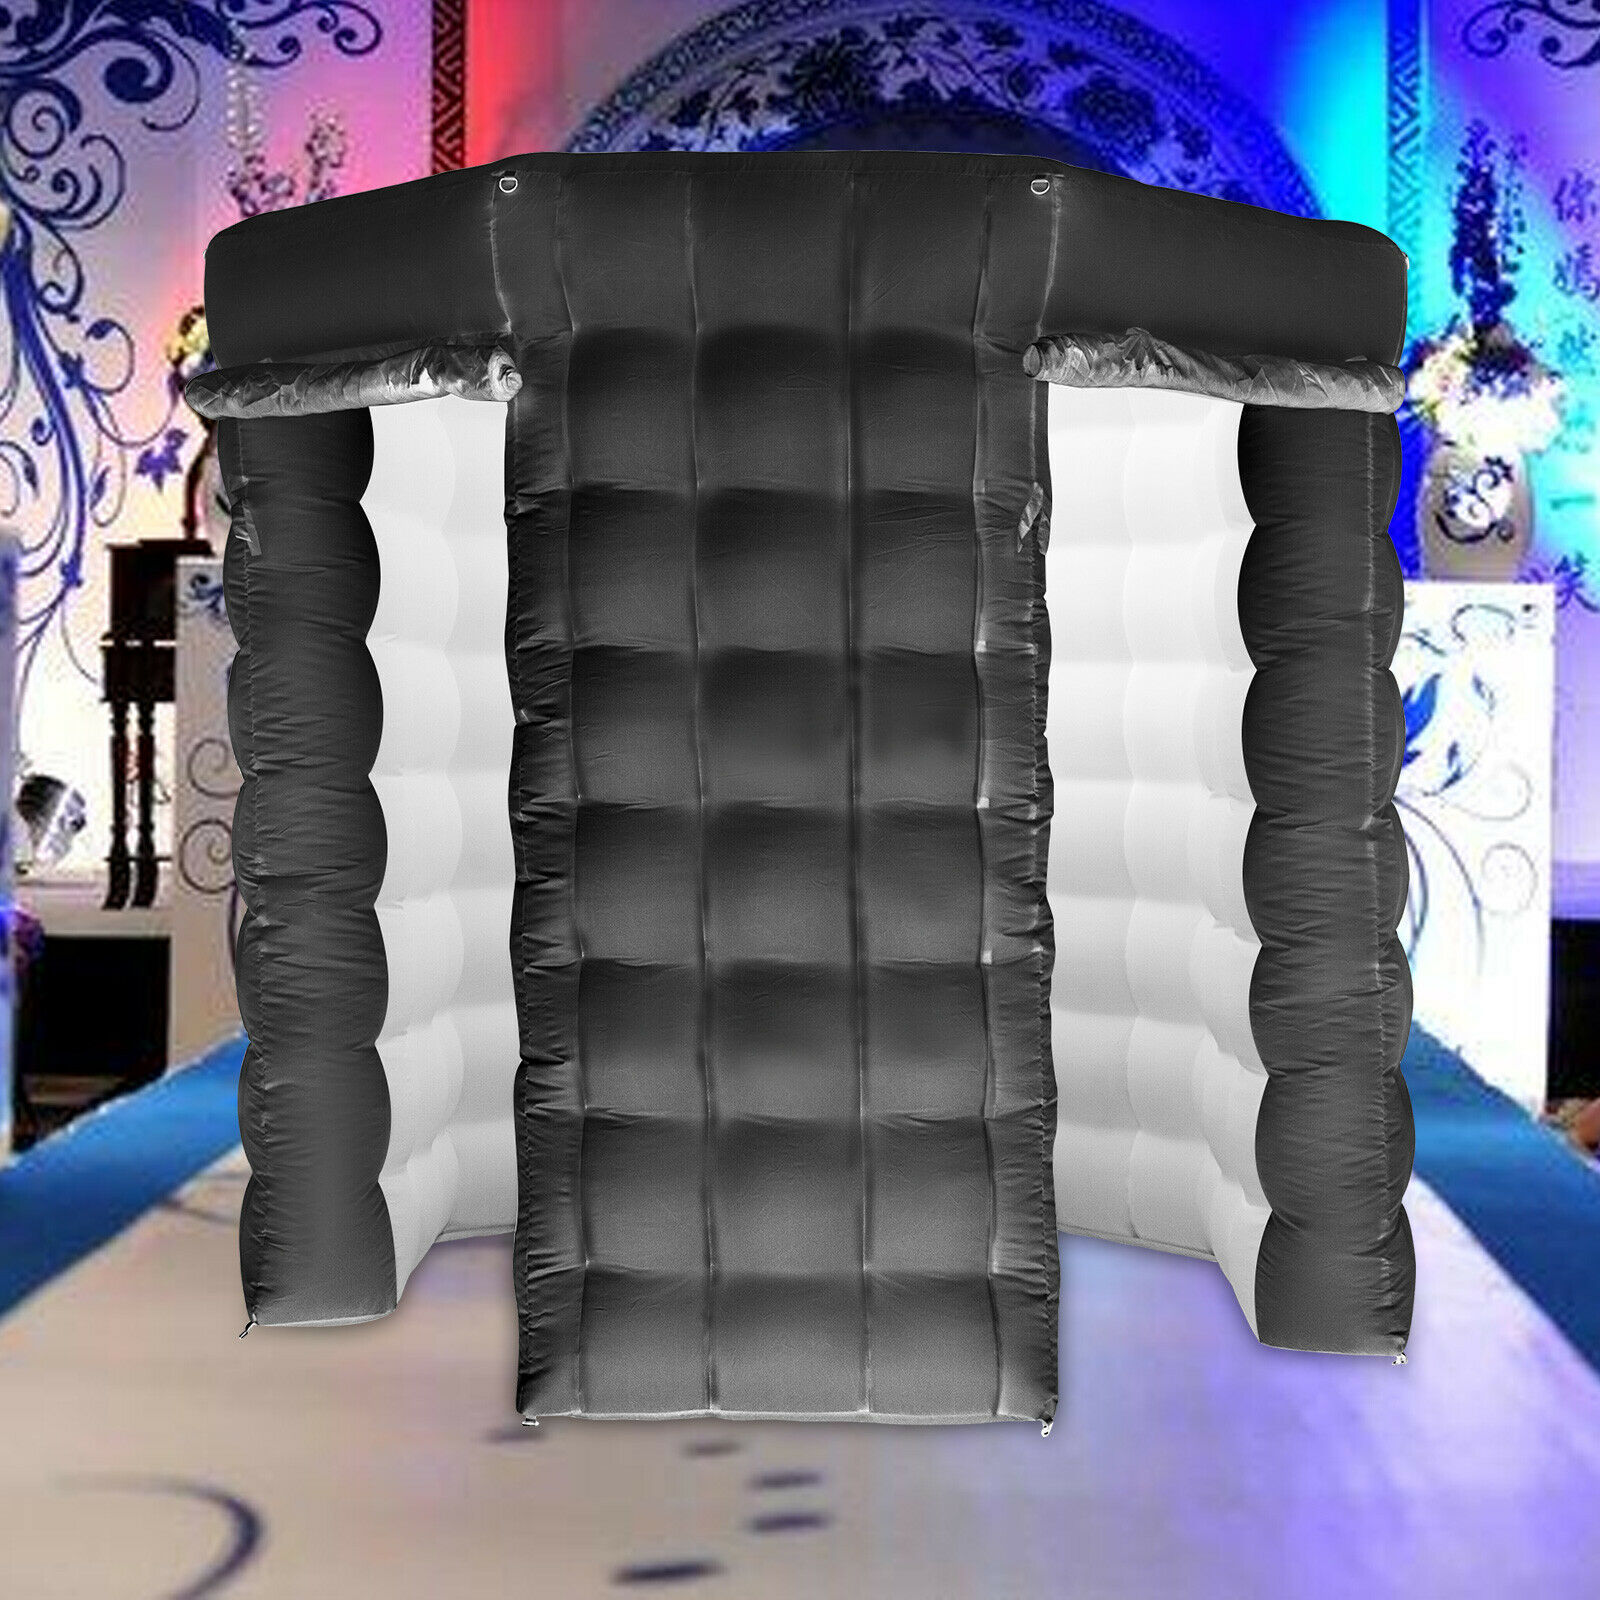 Inflatable Photo Booth 8.2X 8.2ft Photo Booth with 16 Colors LED Changing Lights and Biult-in Fan Great for Parties Weddings Anniversary Birthdays Company Parties Special Events 3 Doors